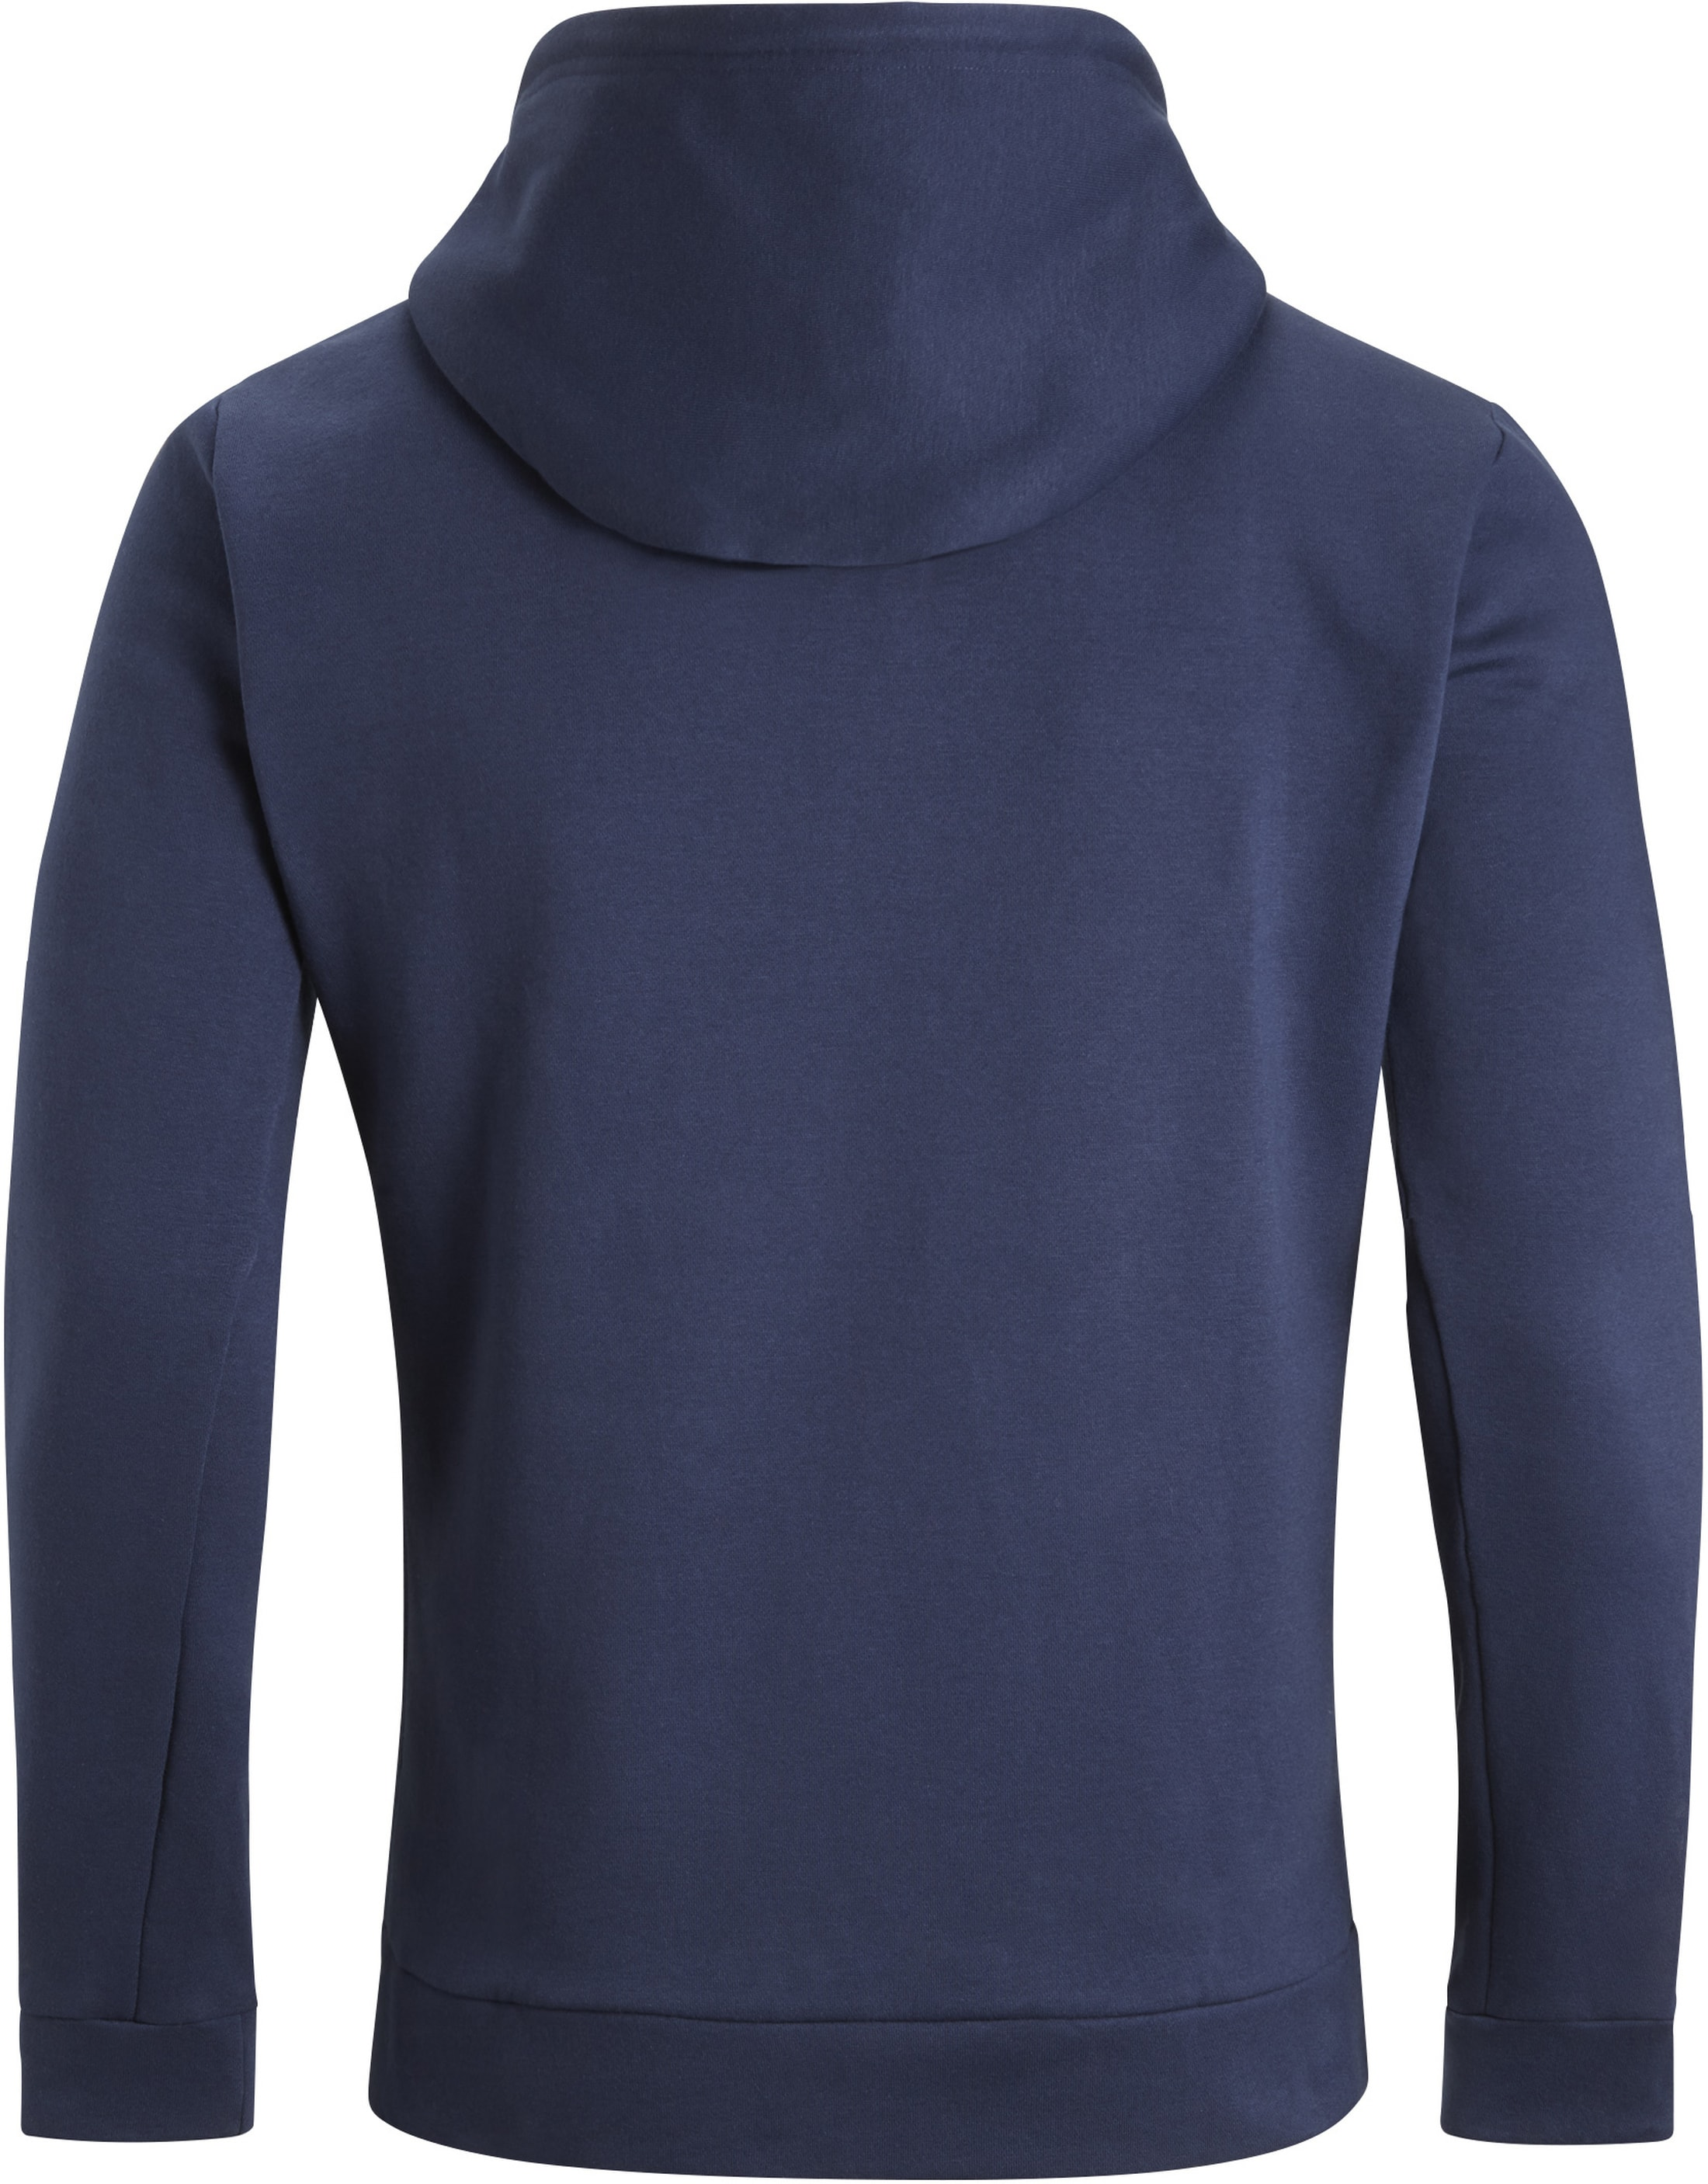 Bjorn Borg Hooded Vest Peacoat Navy foto 2